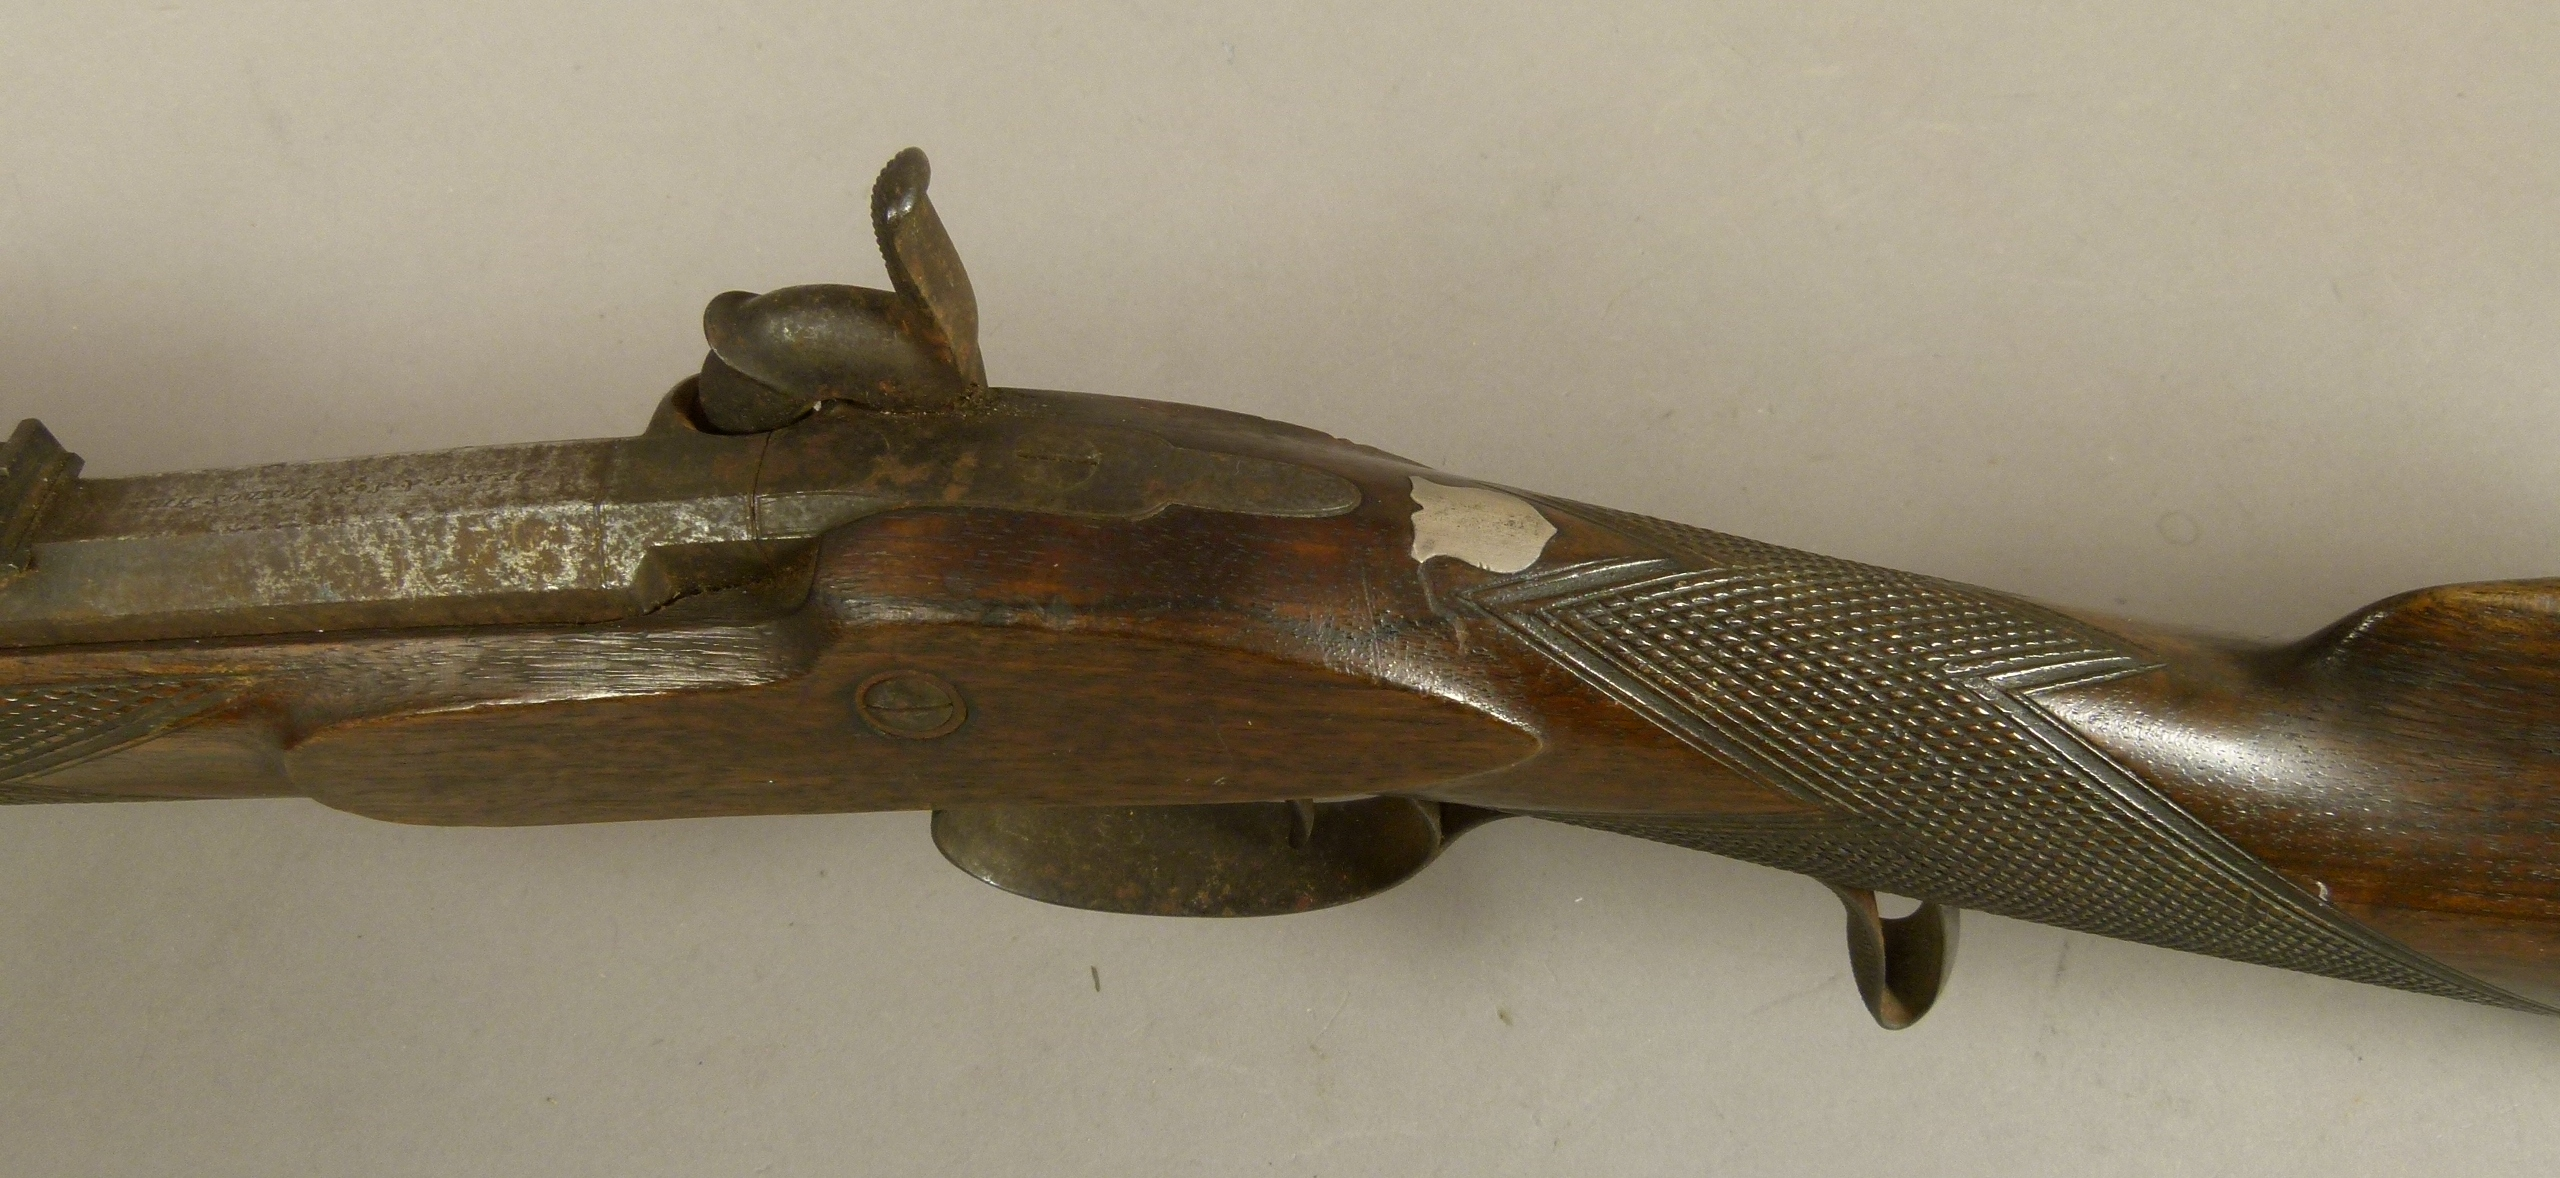 Lot 36 - A PERCUSSION SPORTING RIFLE by Deane & Son, London c.1825, octagonal barrel, rear sighted, signed